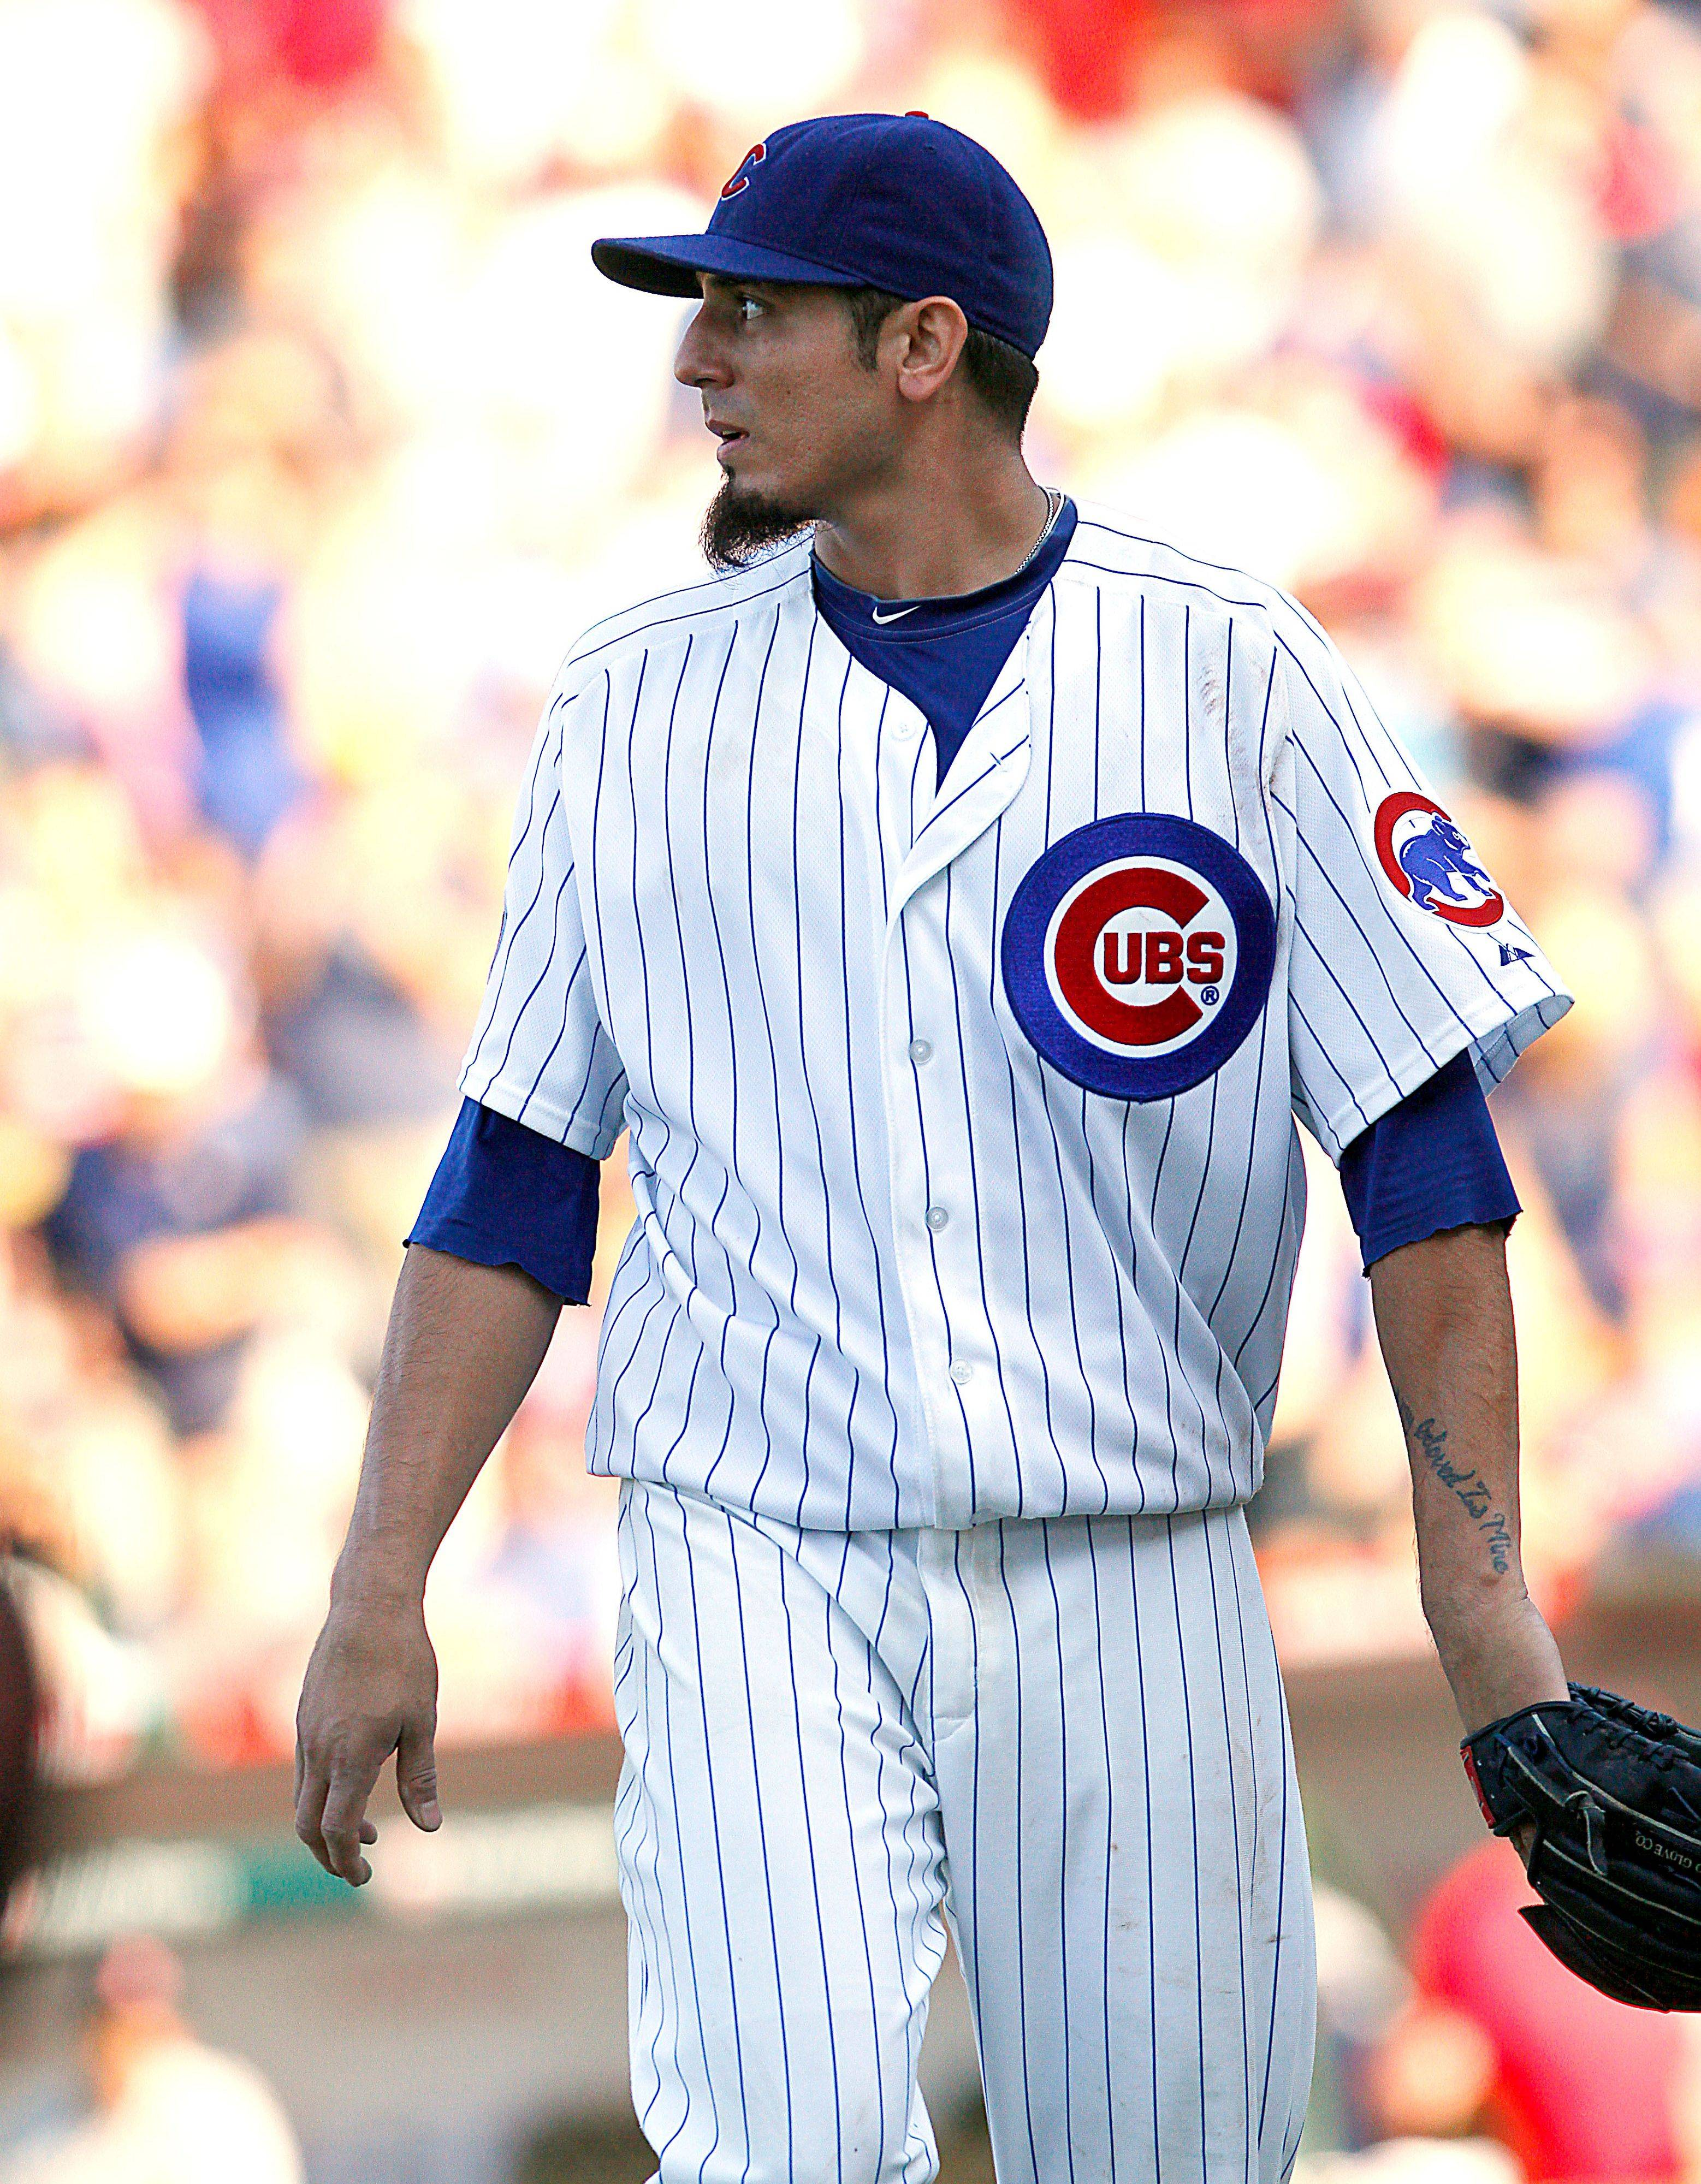 Chicago Cubs starting pitcher Matt Garza looks at the scoreboard after pitching out of a jam in the seventh inning Saturday against the St. Louis Cardinals in Chicago.